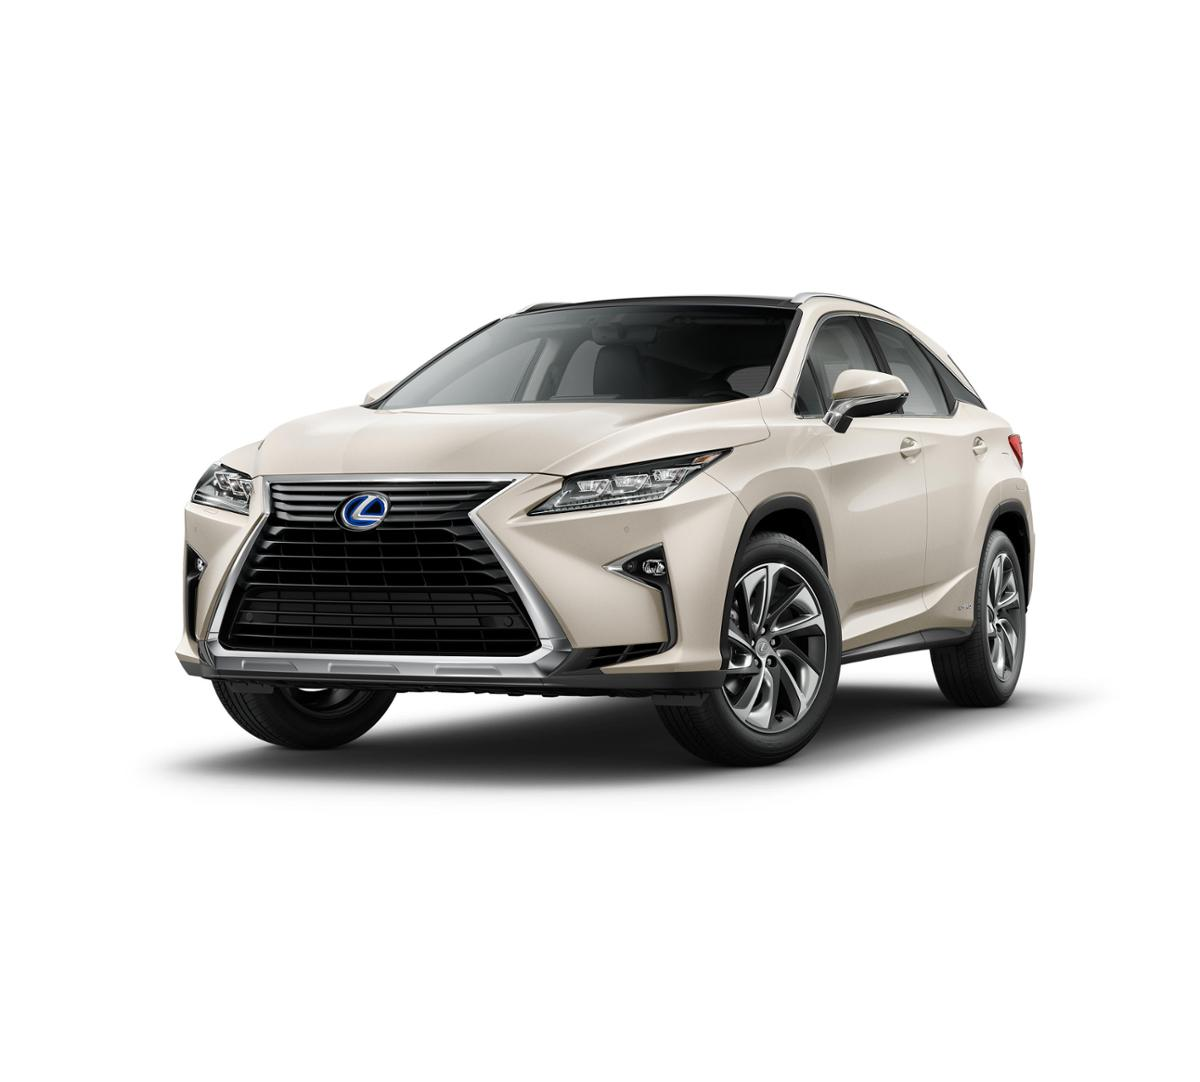 2018 Lexus RX 450h Vehicle Photo in Las Vegas, NV 89146